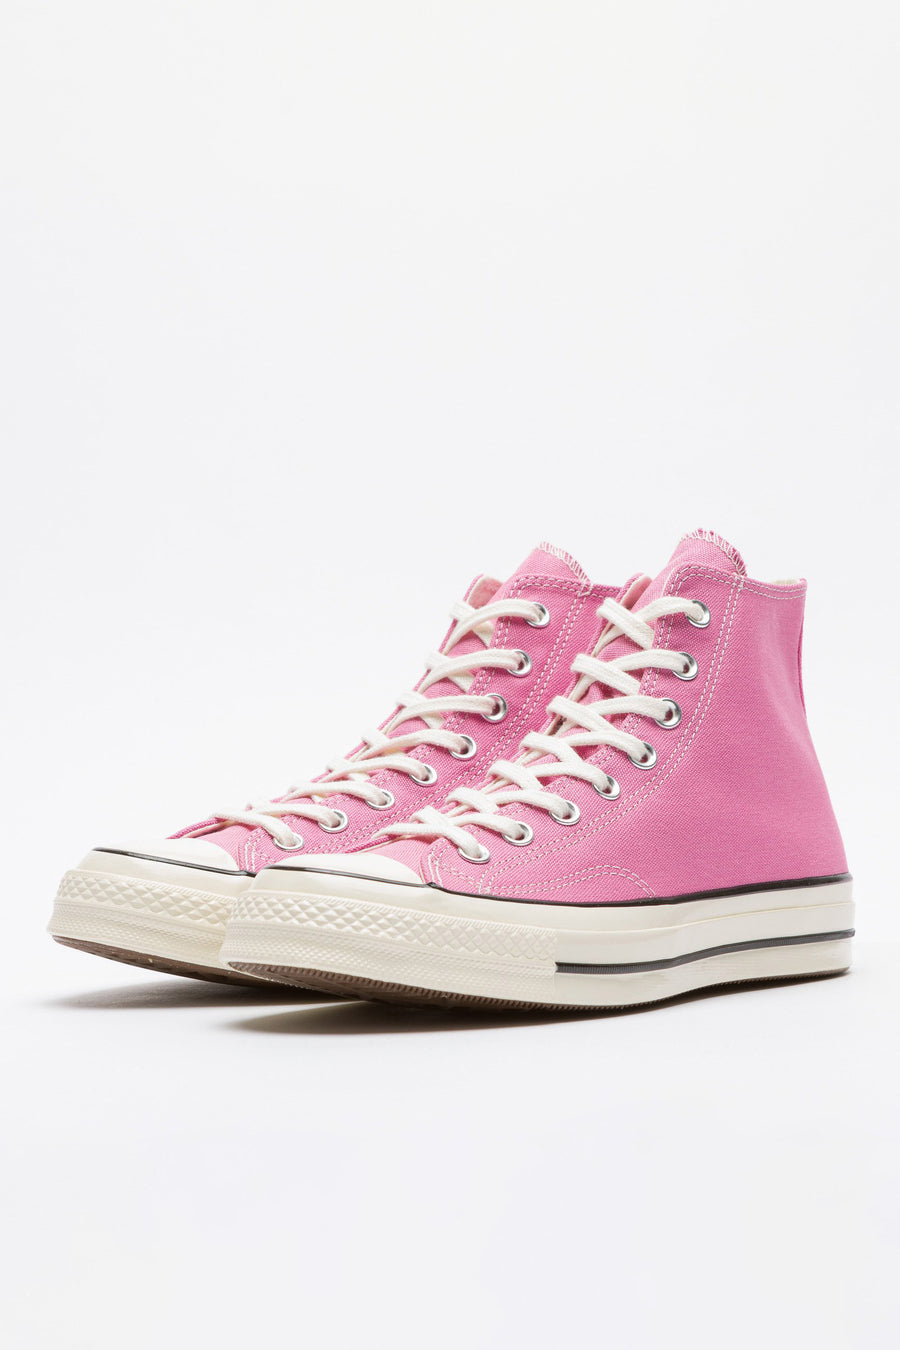 Converse Chuck 70 Hi Magic Flamingo in Flamingo/Egret/Black - Notre